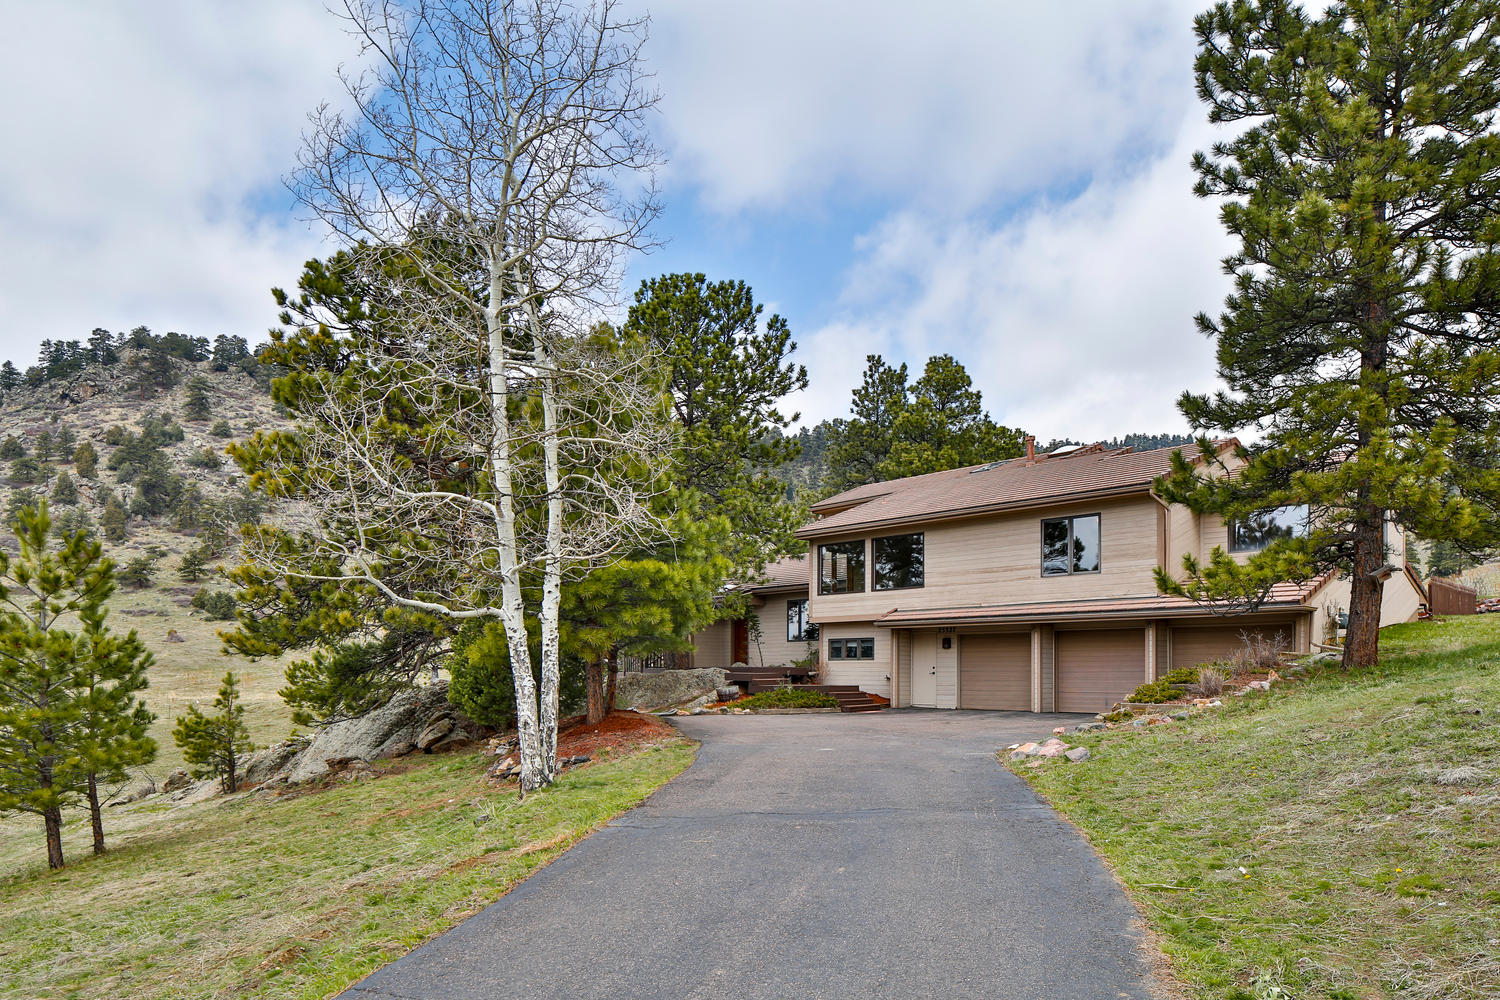 獨棟家庭住宅 為 出售 在 Nicely Remodeled Genesee Home with Mt. Evans Views 25327 Foothills Drive Golden, 科羅拉多州, 80401 美國